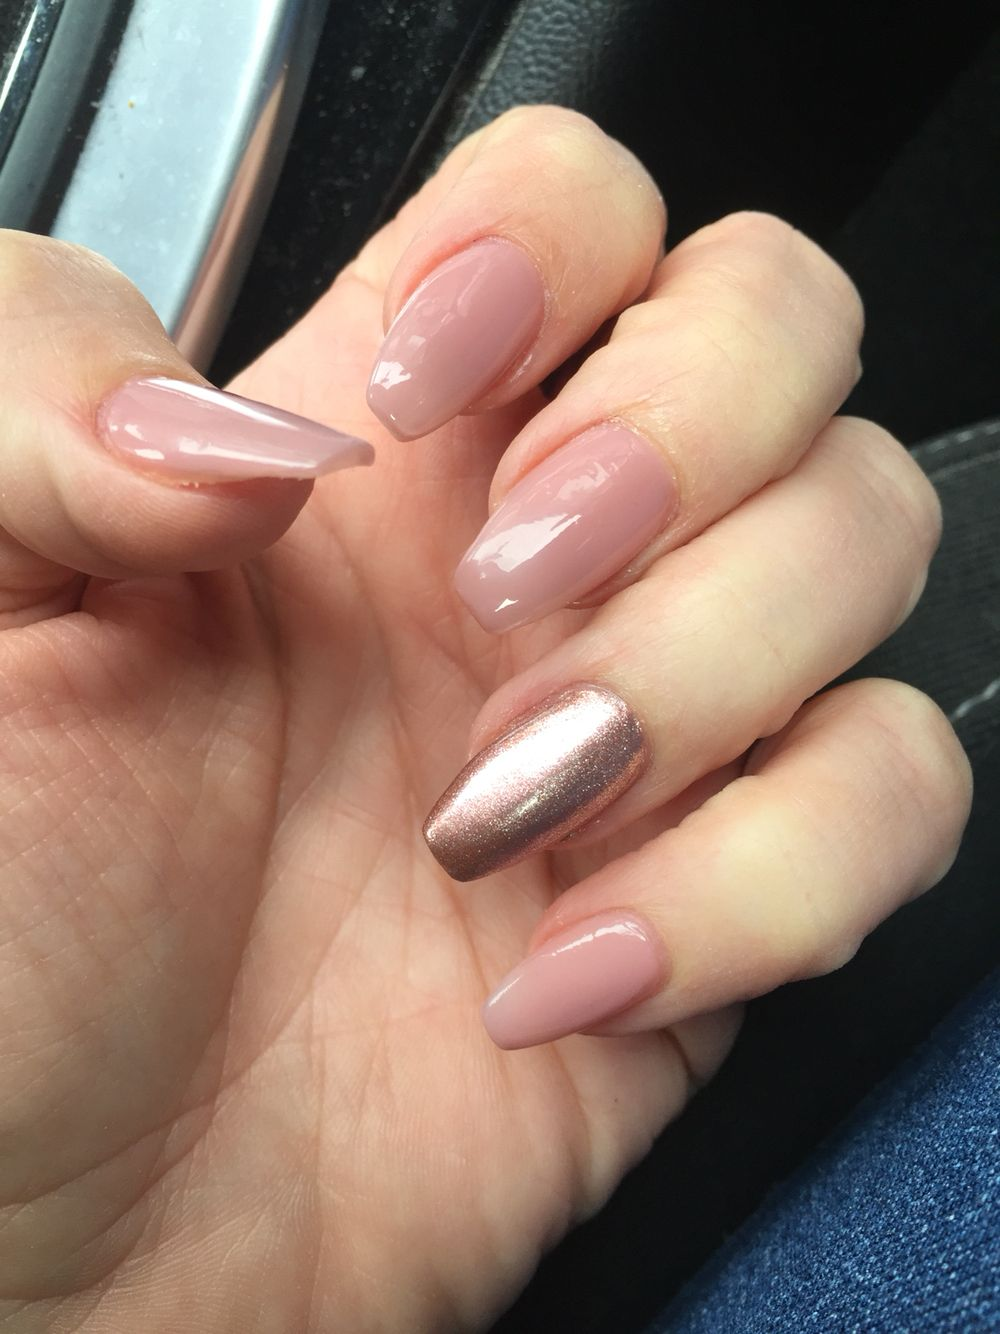 New coffin tip nails rose gold and pink nude love it | Nail ideas ...